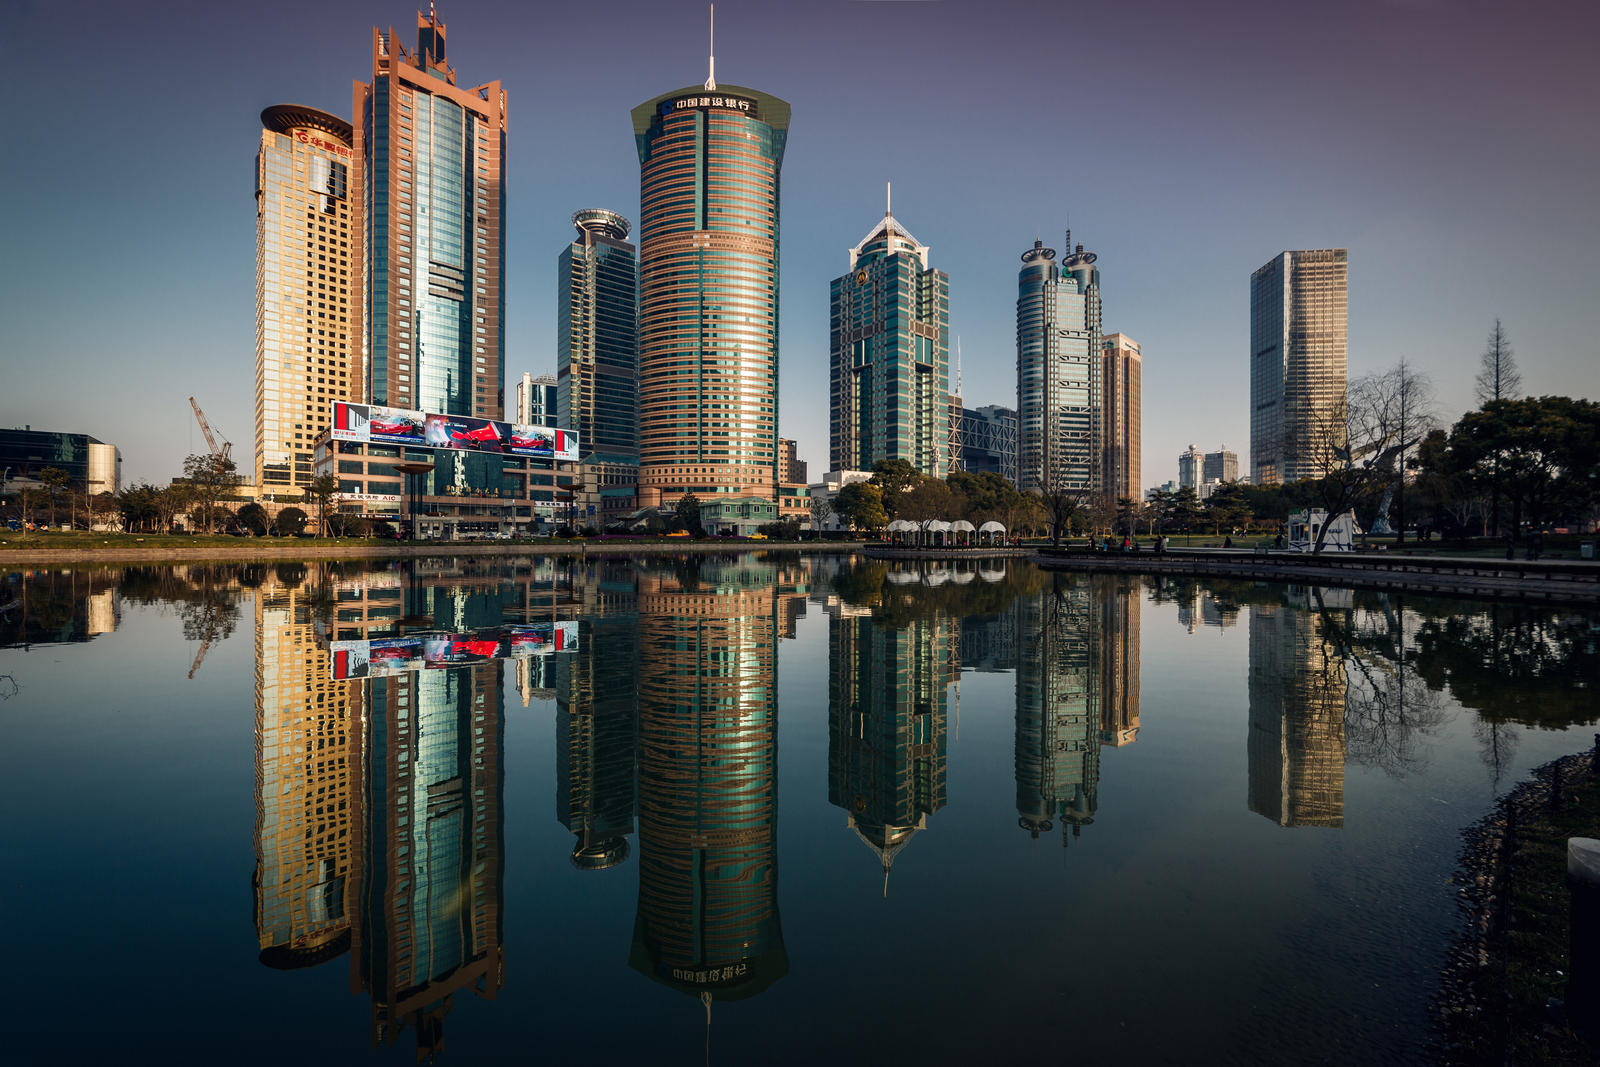 Pudong Skyline, Shanghai by ChristianRudat